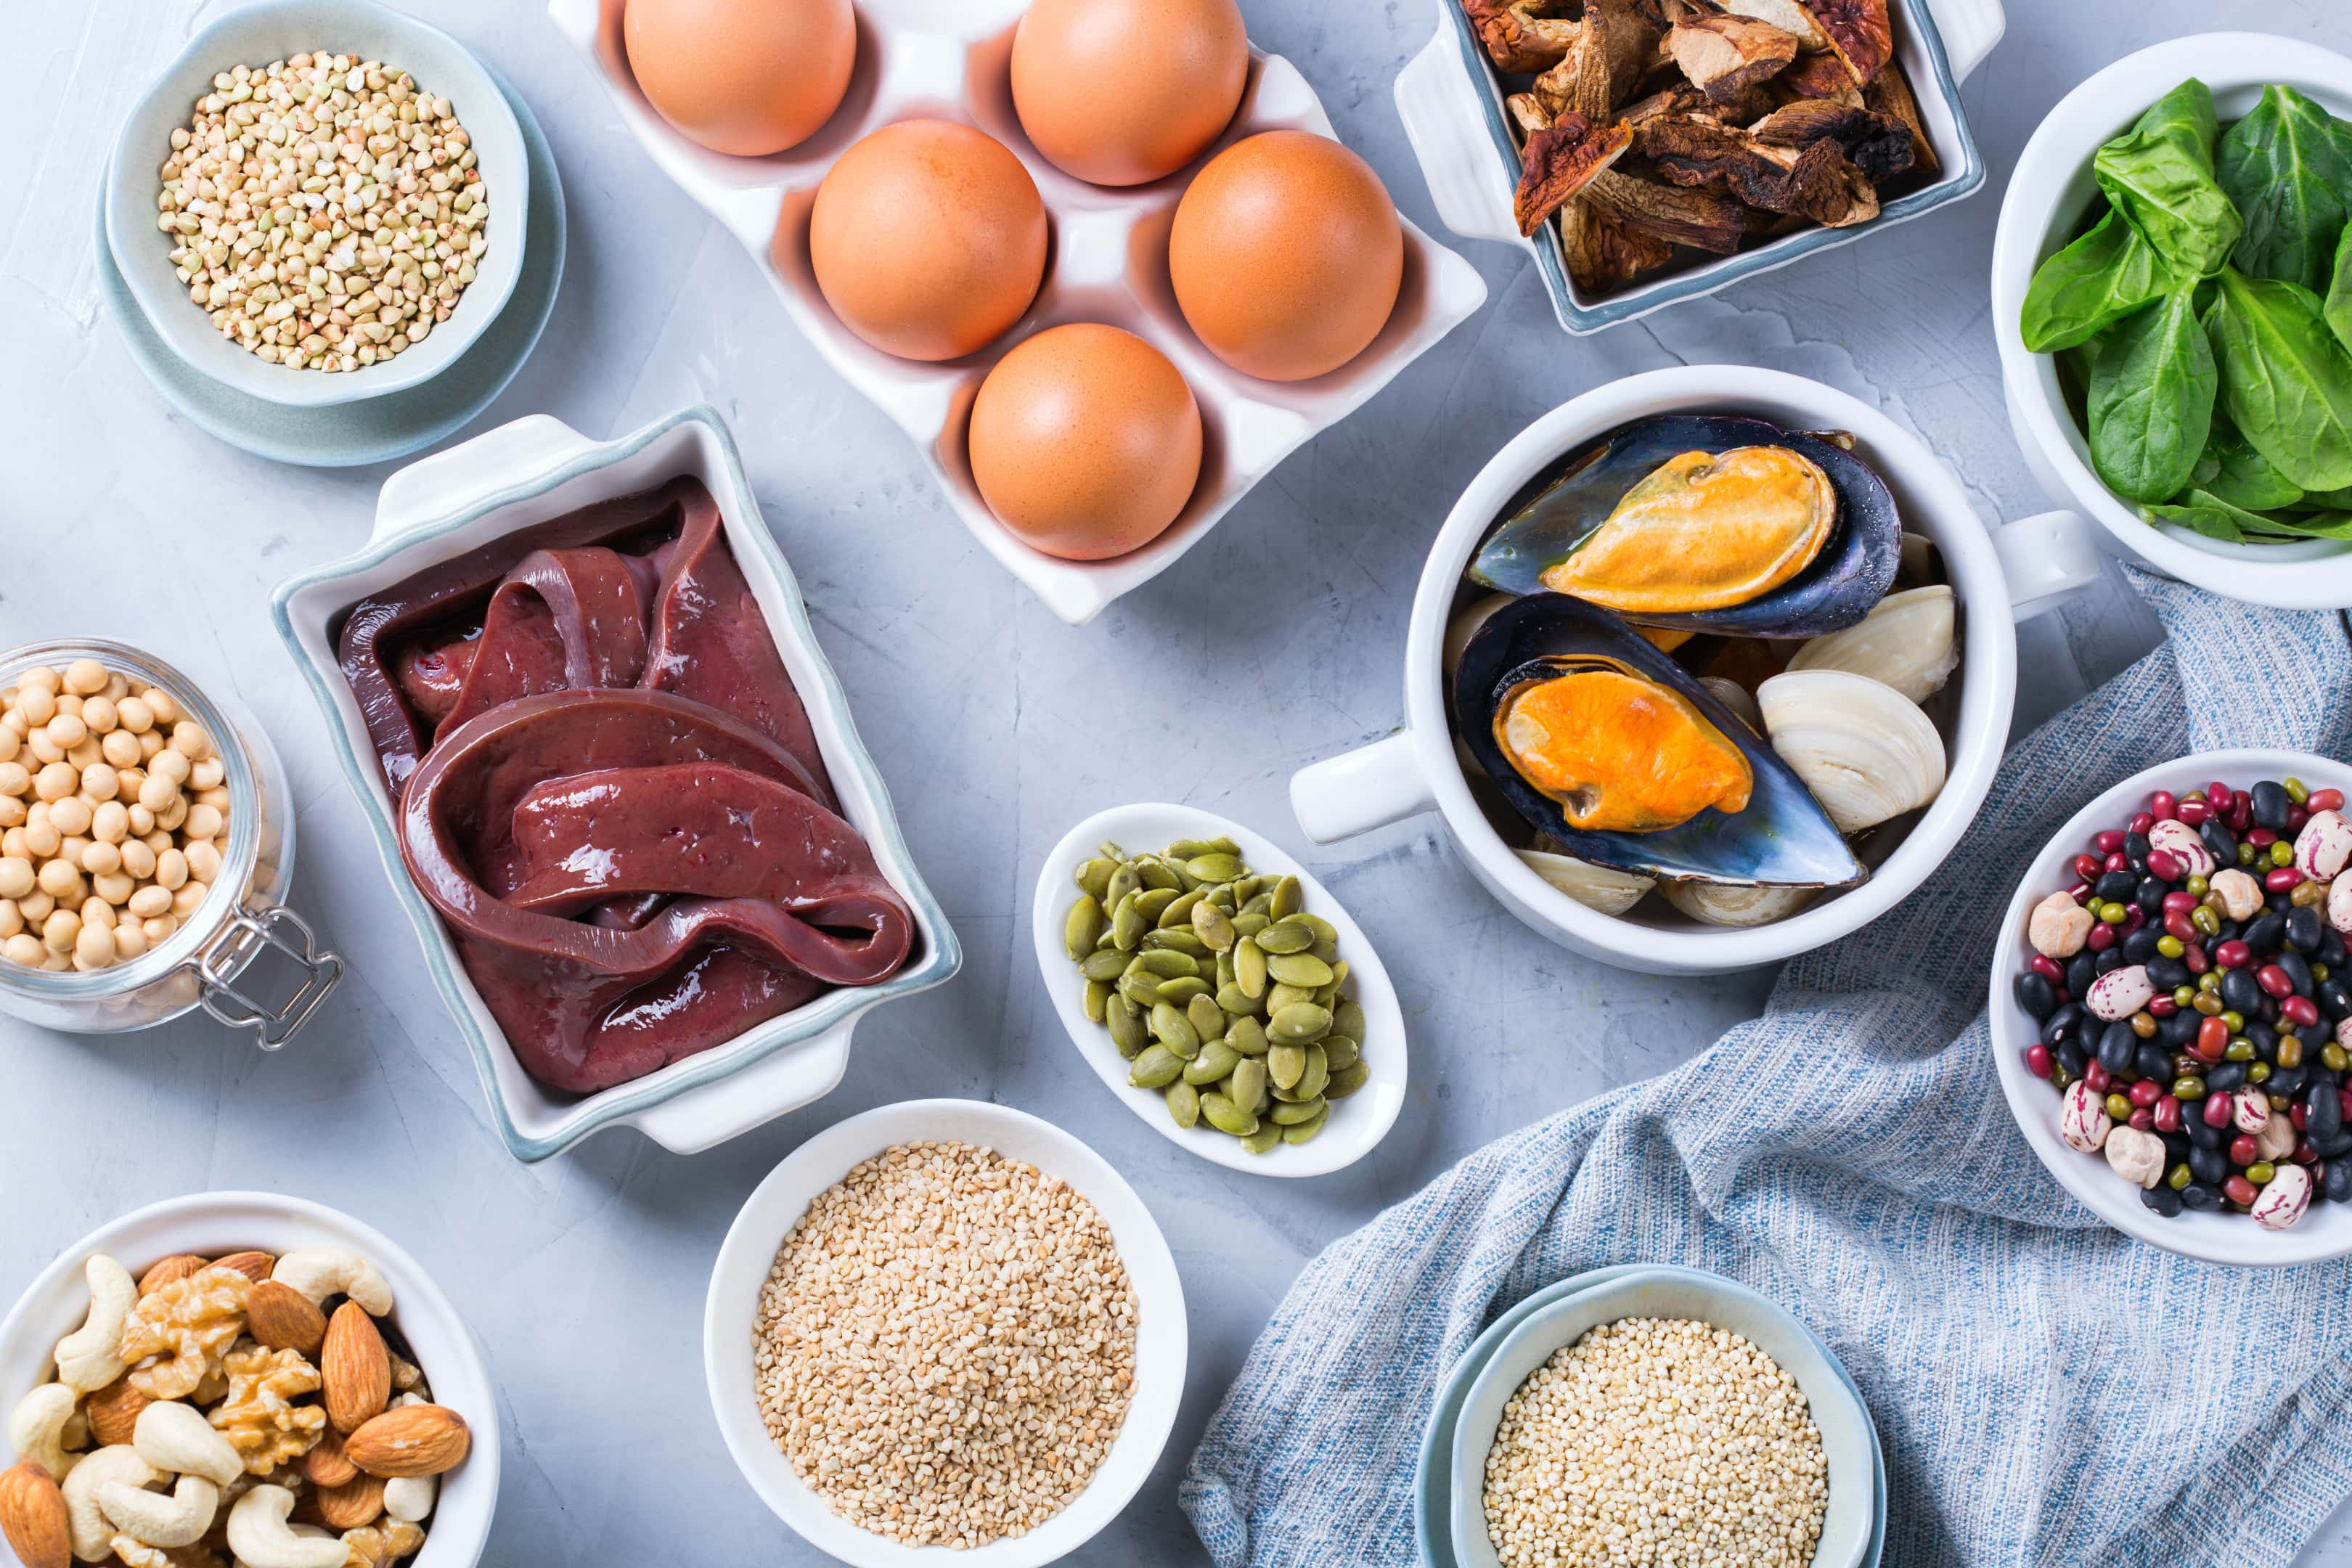 Healthy nutrition — beef liver, spinach, eggs, legumes, nuts, mushrooms, quinoa sesame, pumpkin seeds, soy beans and seafood